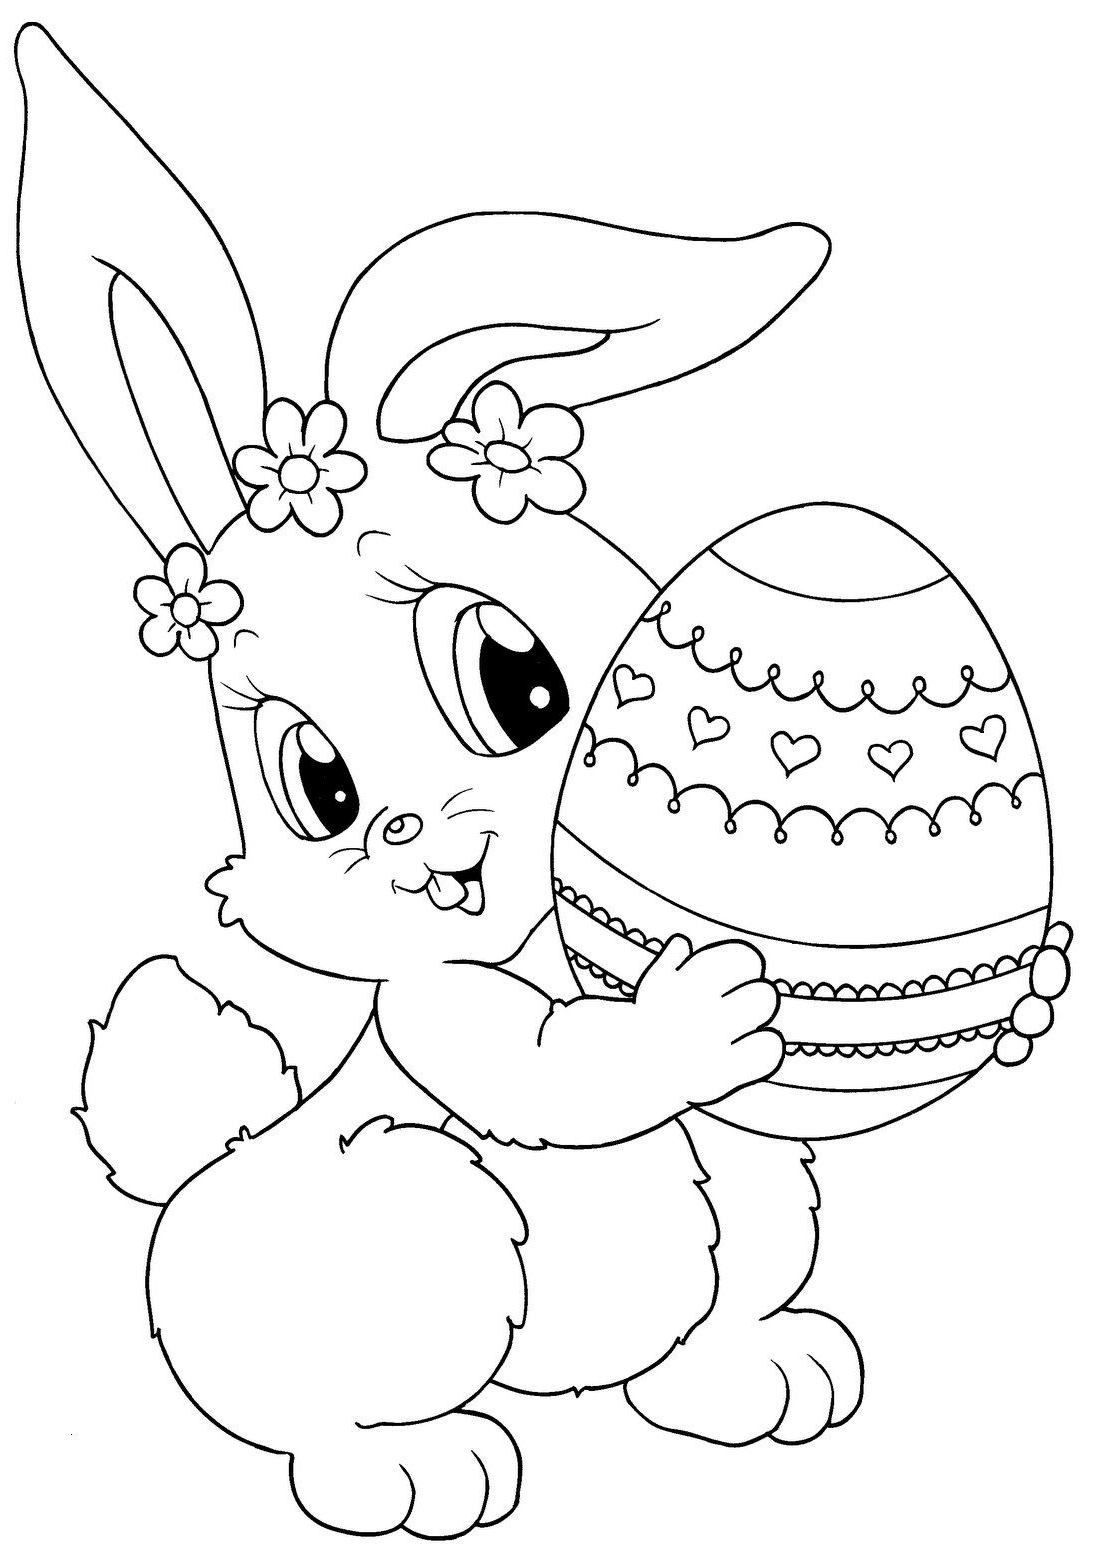 Coloring Pages   Easter Bunny Coloring